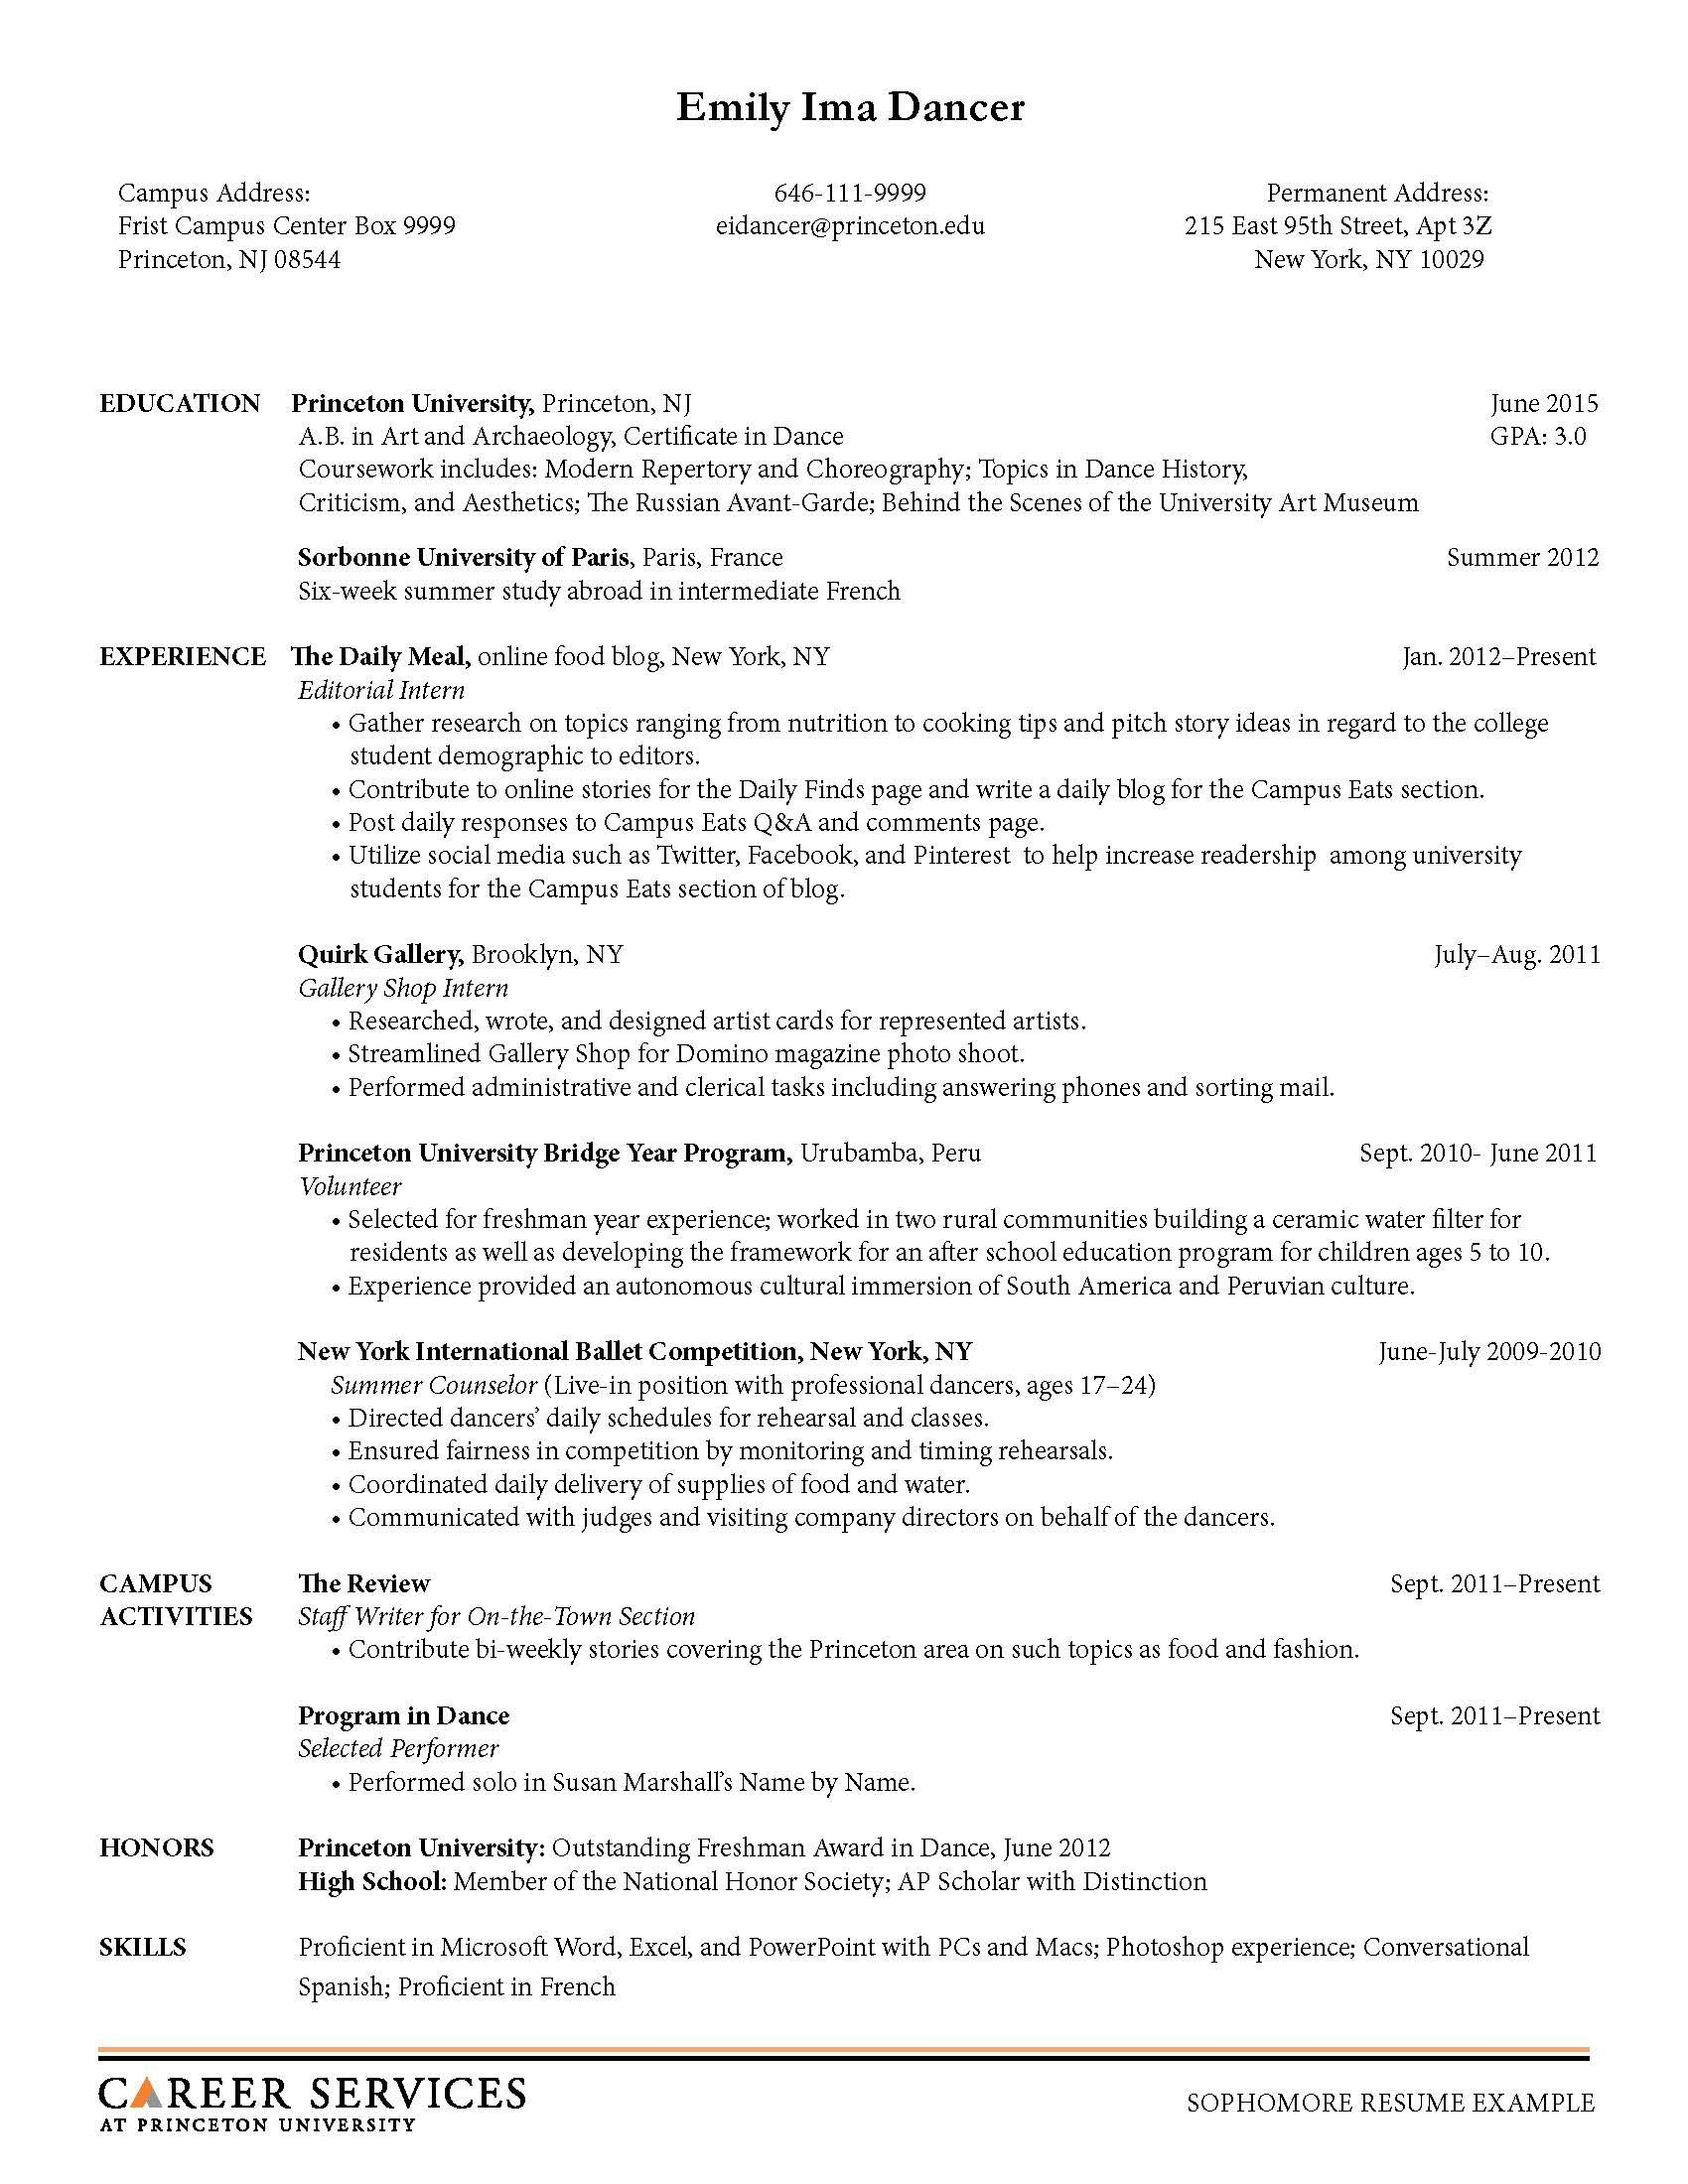 Opposenewapstandardsus  Splendid Sample Resume Resume And Career On Pinterest With Marvelous Zookeeper Resume Besides Cook Resume Objective Furthermore Resume With No Work Experience Sample With Appealing Post Resume On Craigslist Also Resume For Radiologic Technologist In Addition Resume Examples Of Skills And Resume S As Well As Free Resume Samples Online Additionally Customer Service Sample Resumes From Pinterestcom With Opposenewapstandardsus  Marvelous Sample Resume Resume And Career On Pinterest With Appealing Zookeeper Resume Besides Cook Resume Objective Furthermore Resume With No Work Experience Sample And Splendid Post Resume On Craigslist Also Resume For Radiologic Technologist In Addition Resume Examples Of Skills From Pinterestcom